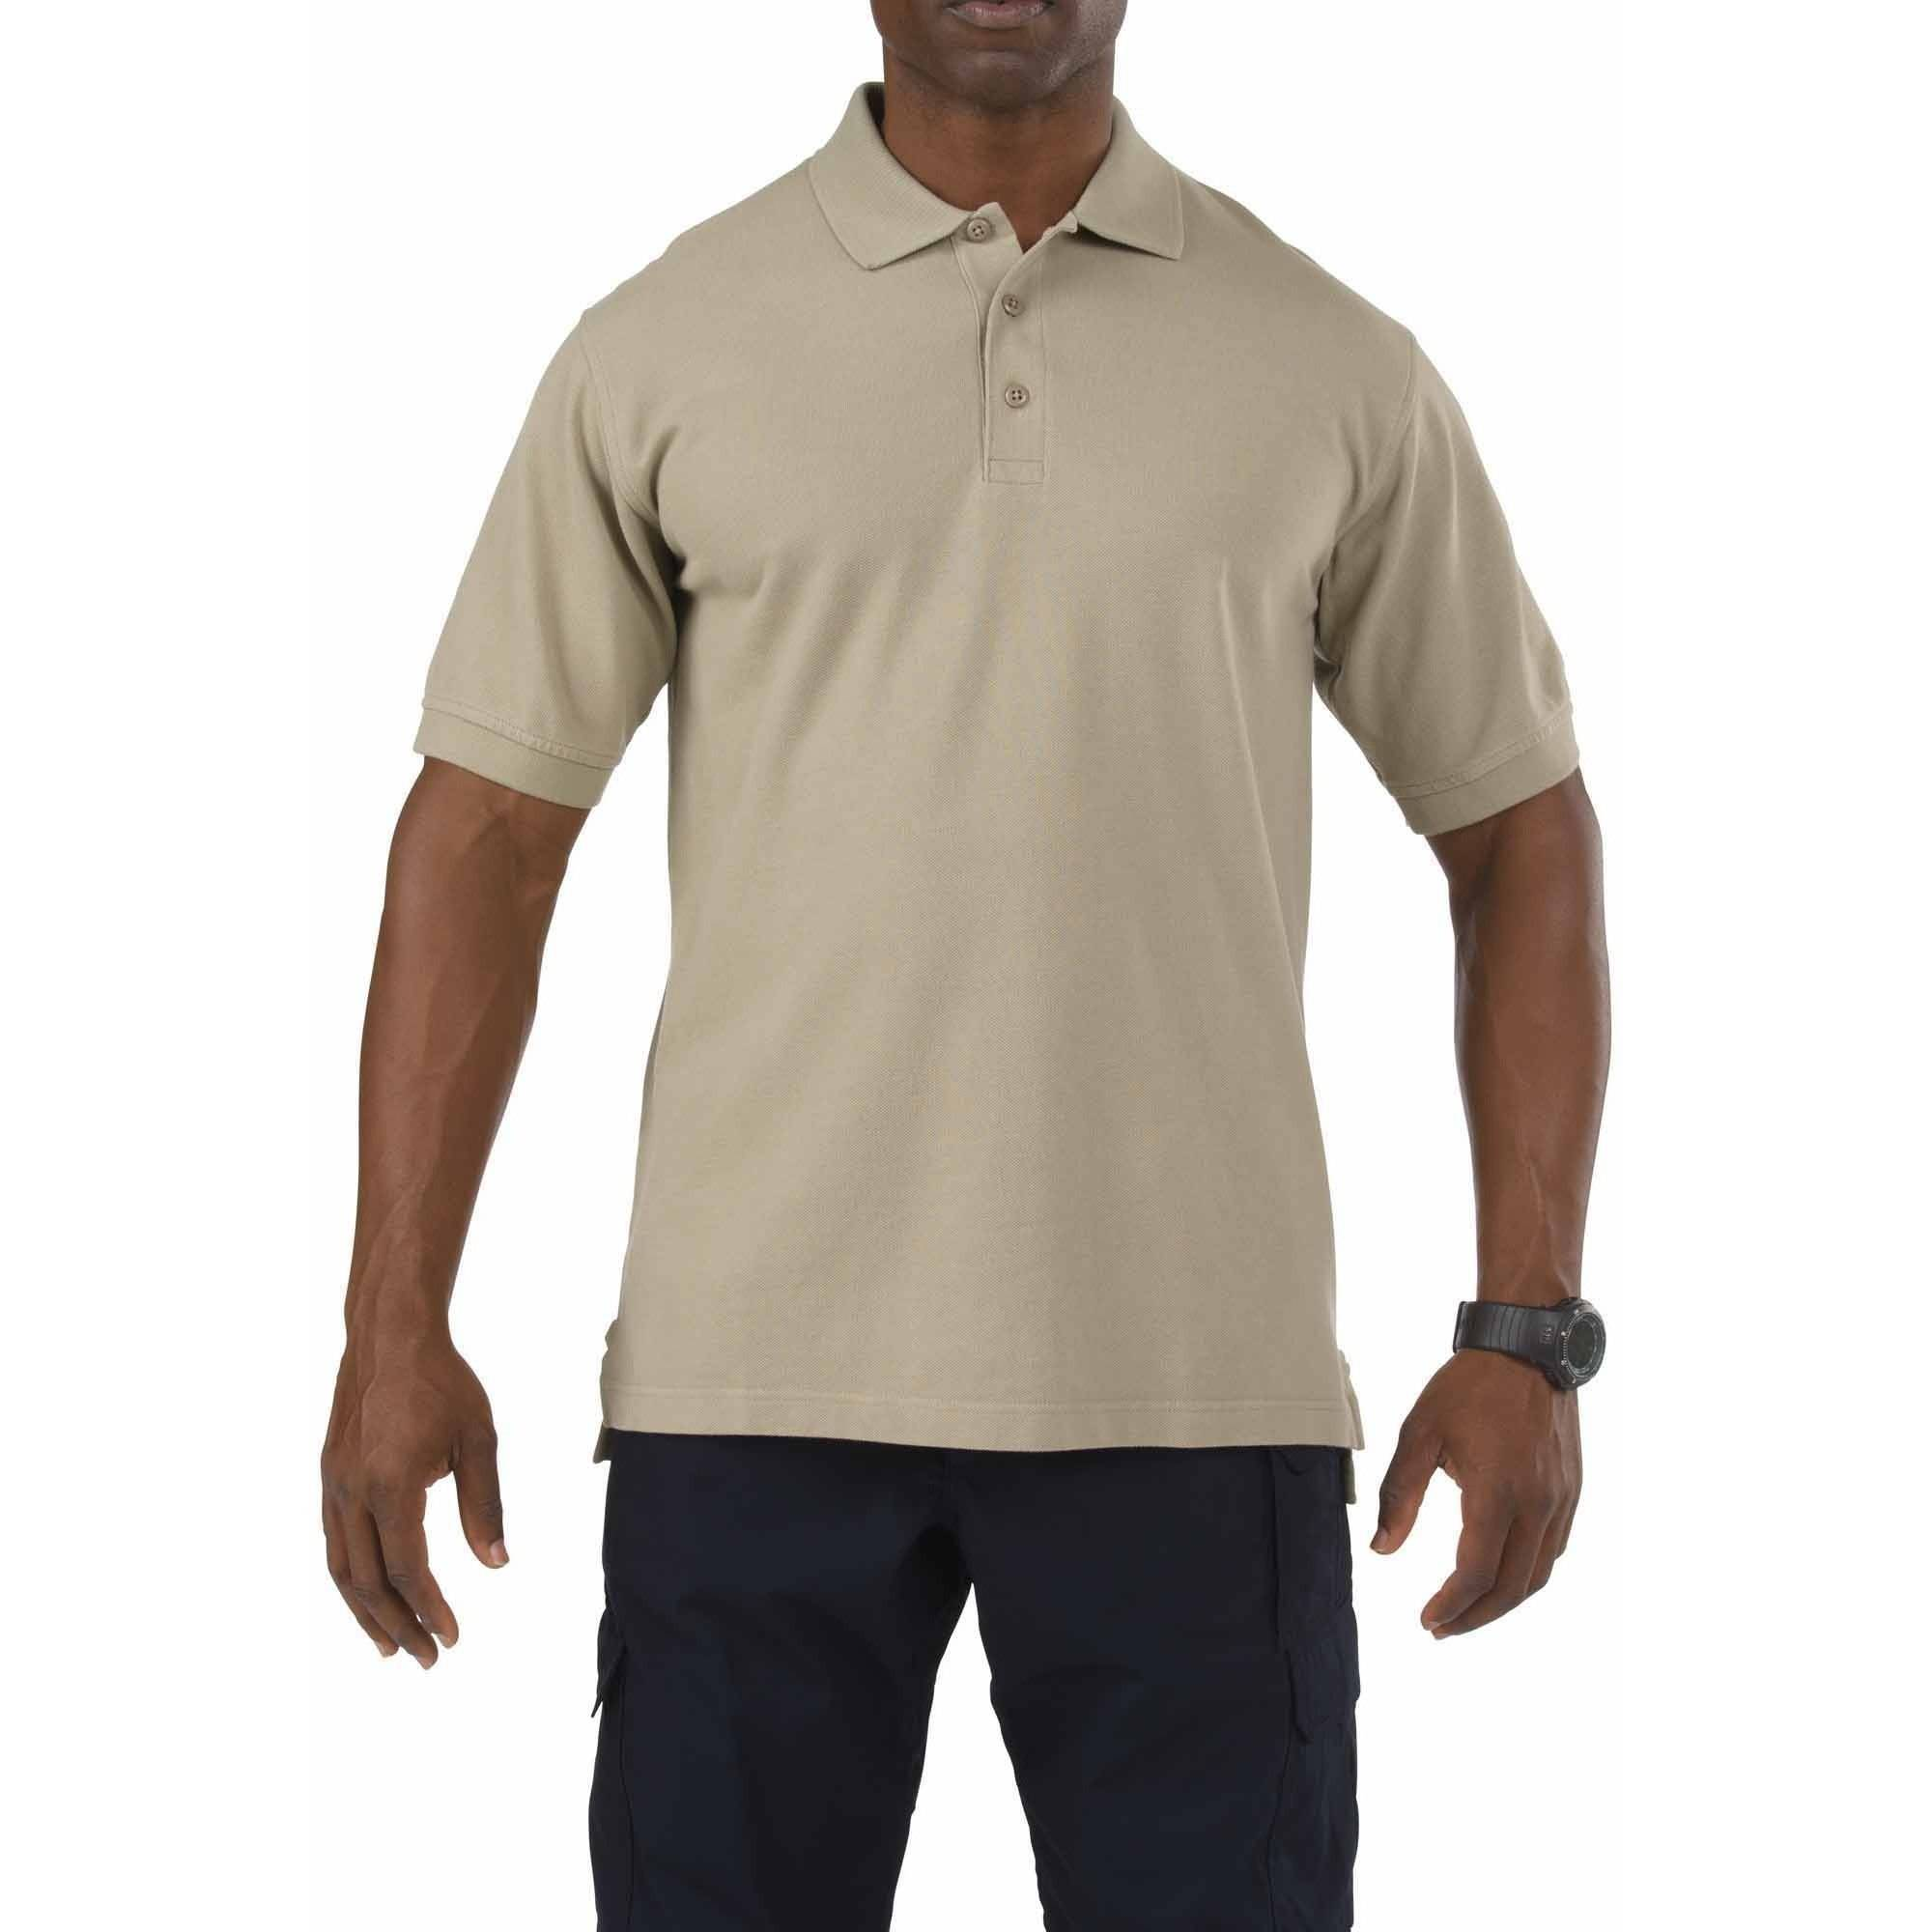 Short Sleeve Professional Polo Shirt, Silver Tan, Tall